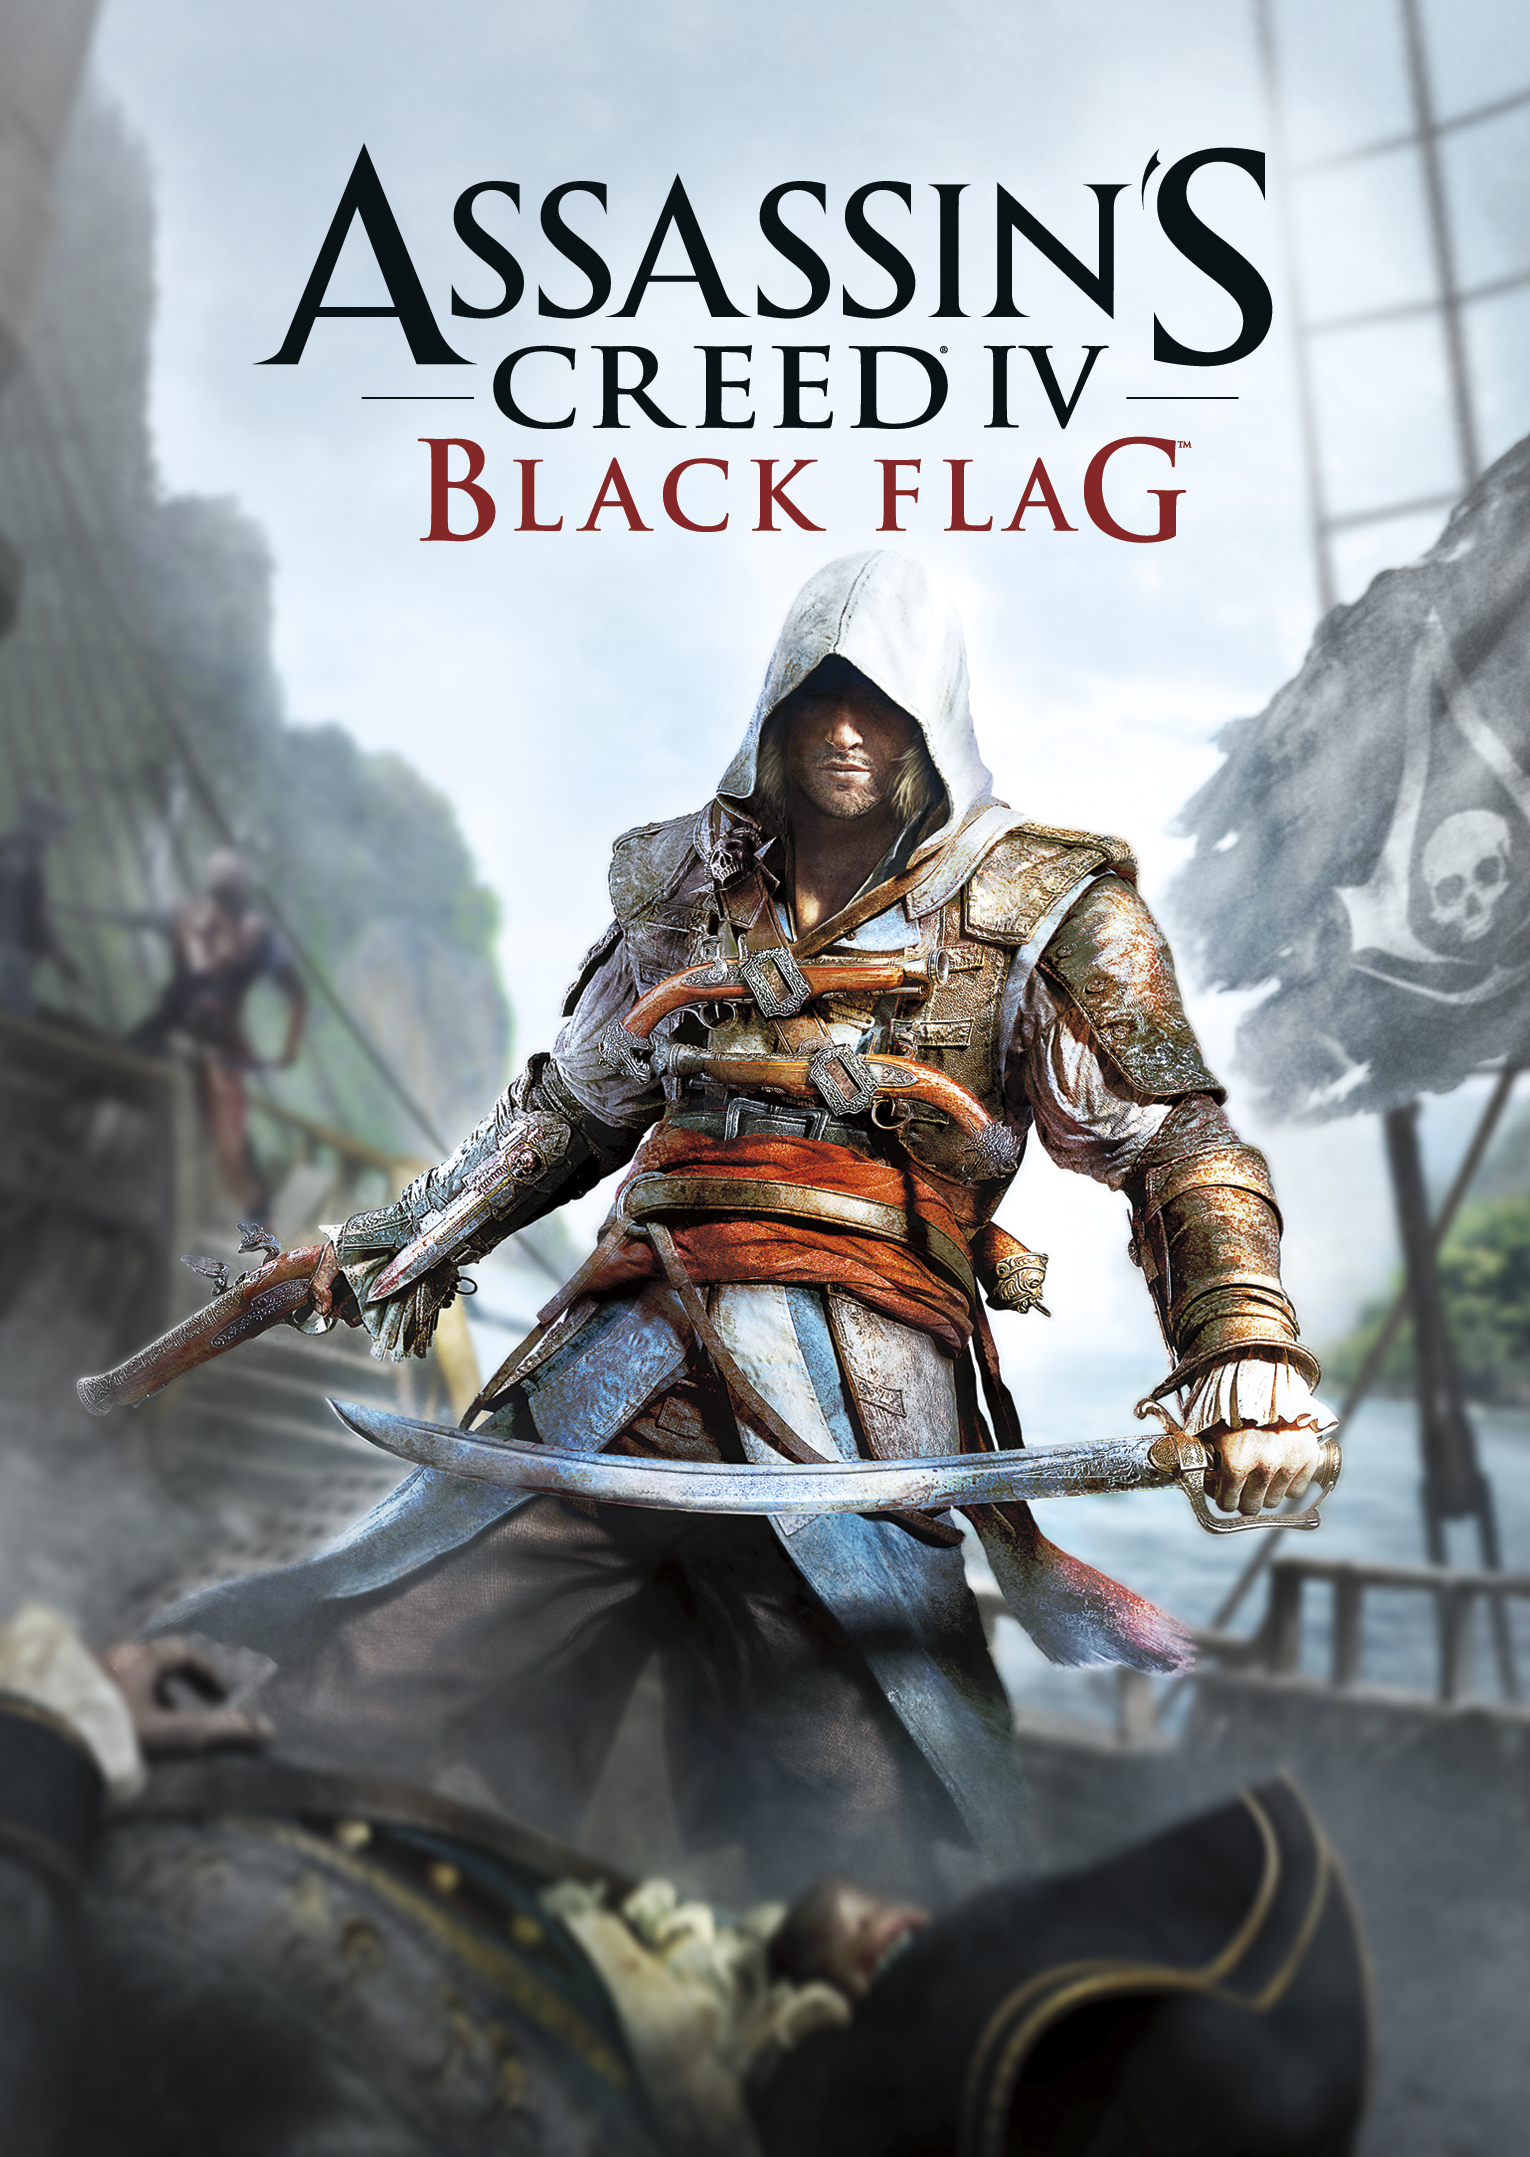 Assassin's Creed IV: Black Flag | Assassin's Creed Wiki ...